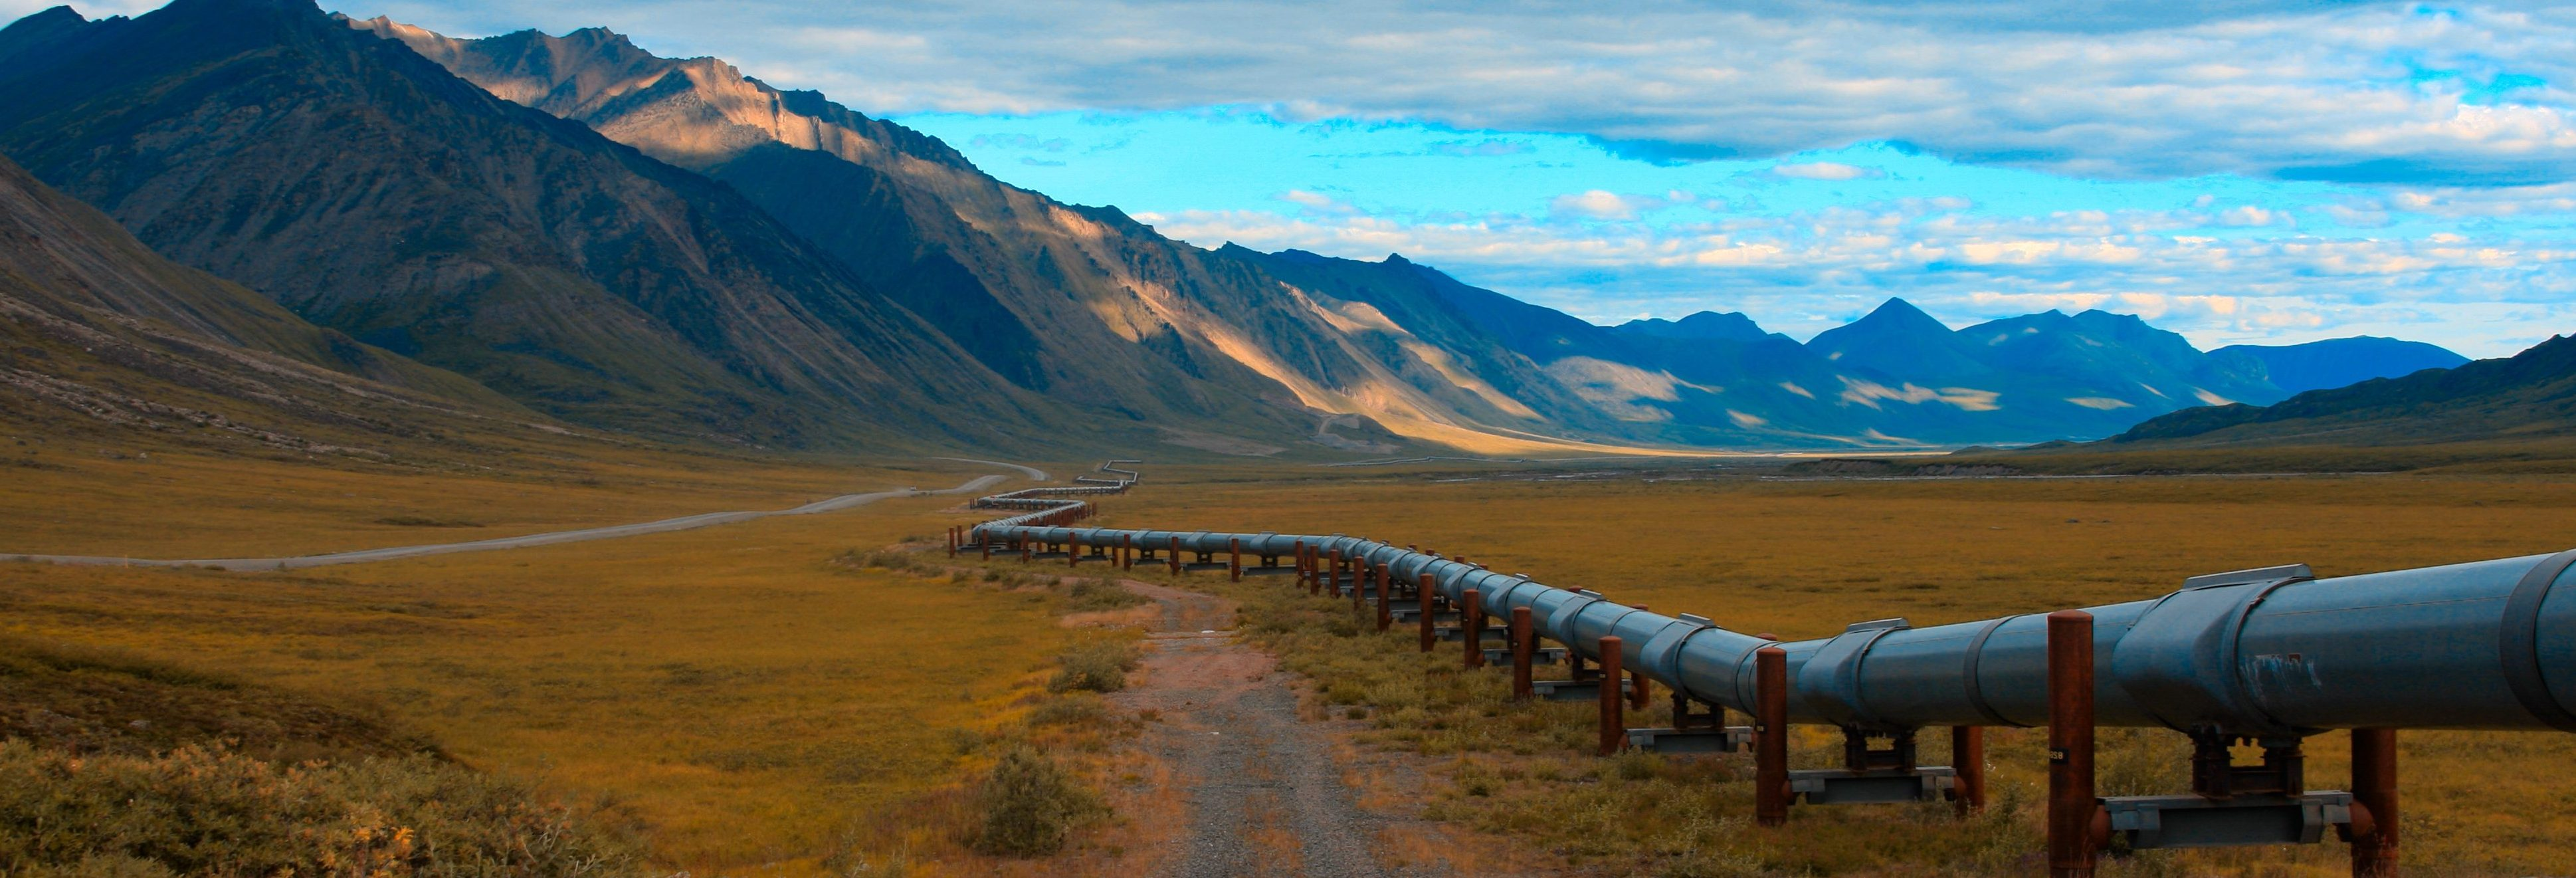 Oil Pipeline in remote north slope of alaska.